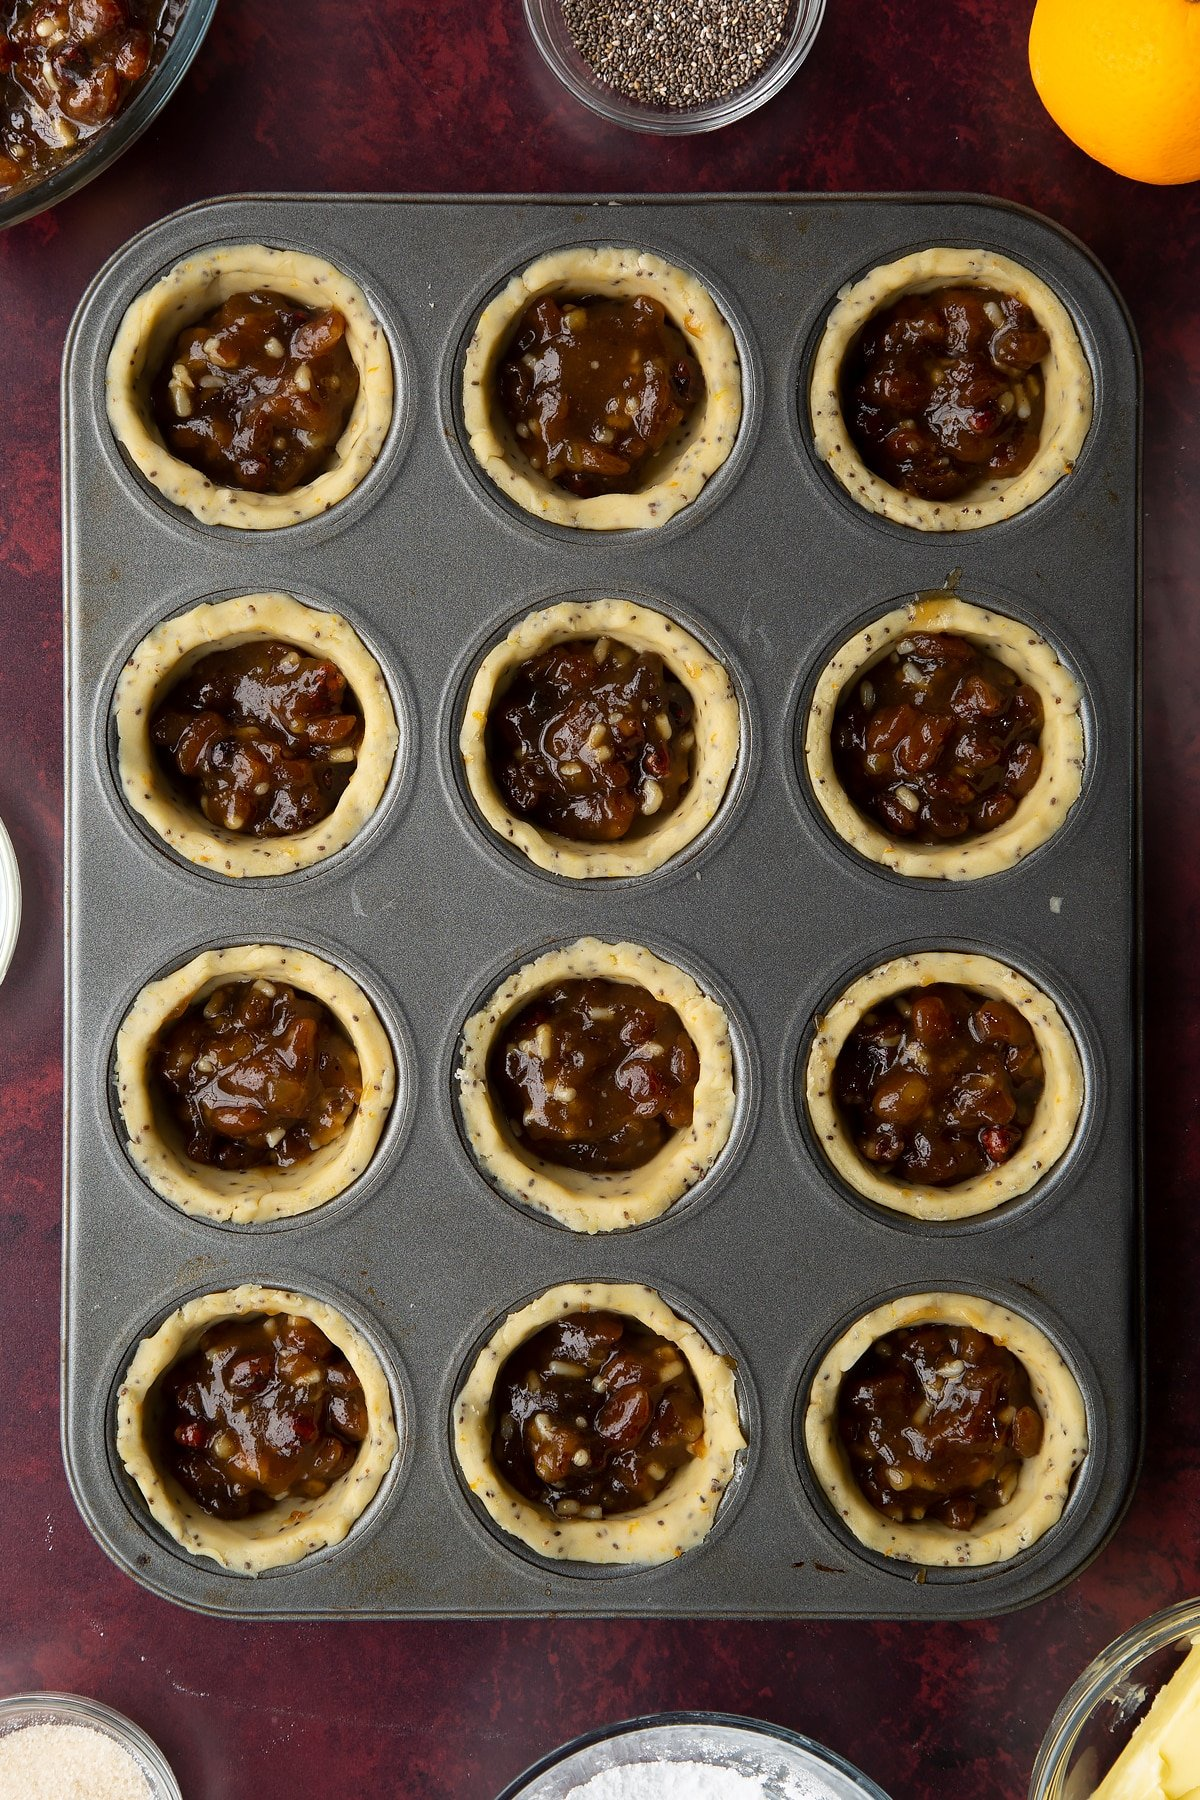 12-hole muffin tray lined with vegan pastry and filled with mincemeat.